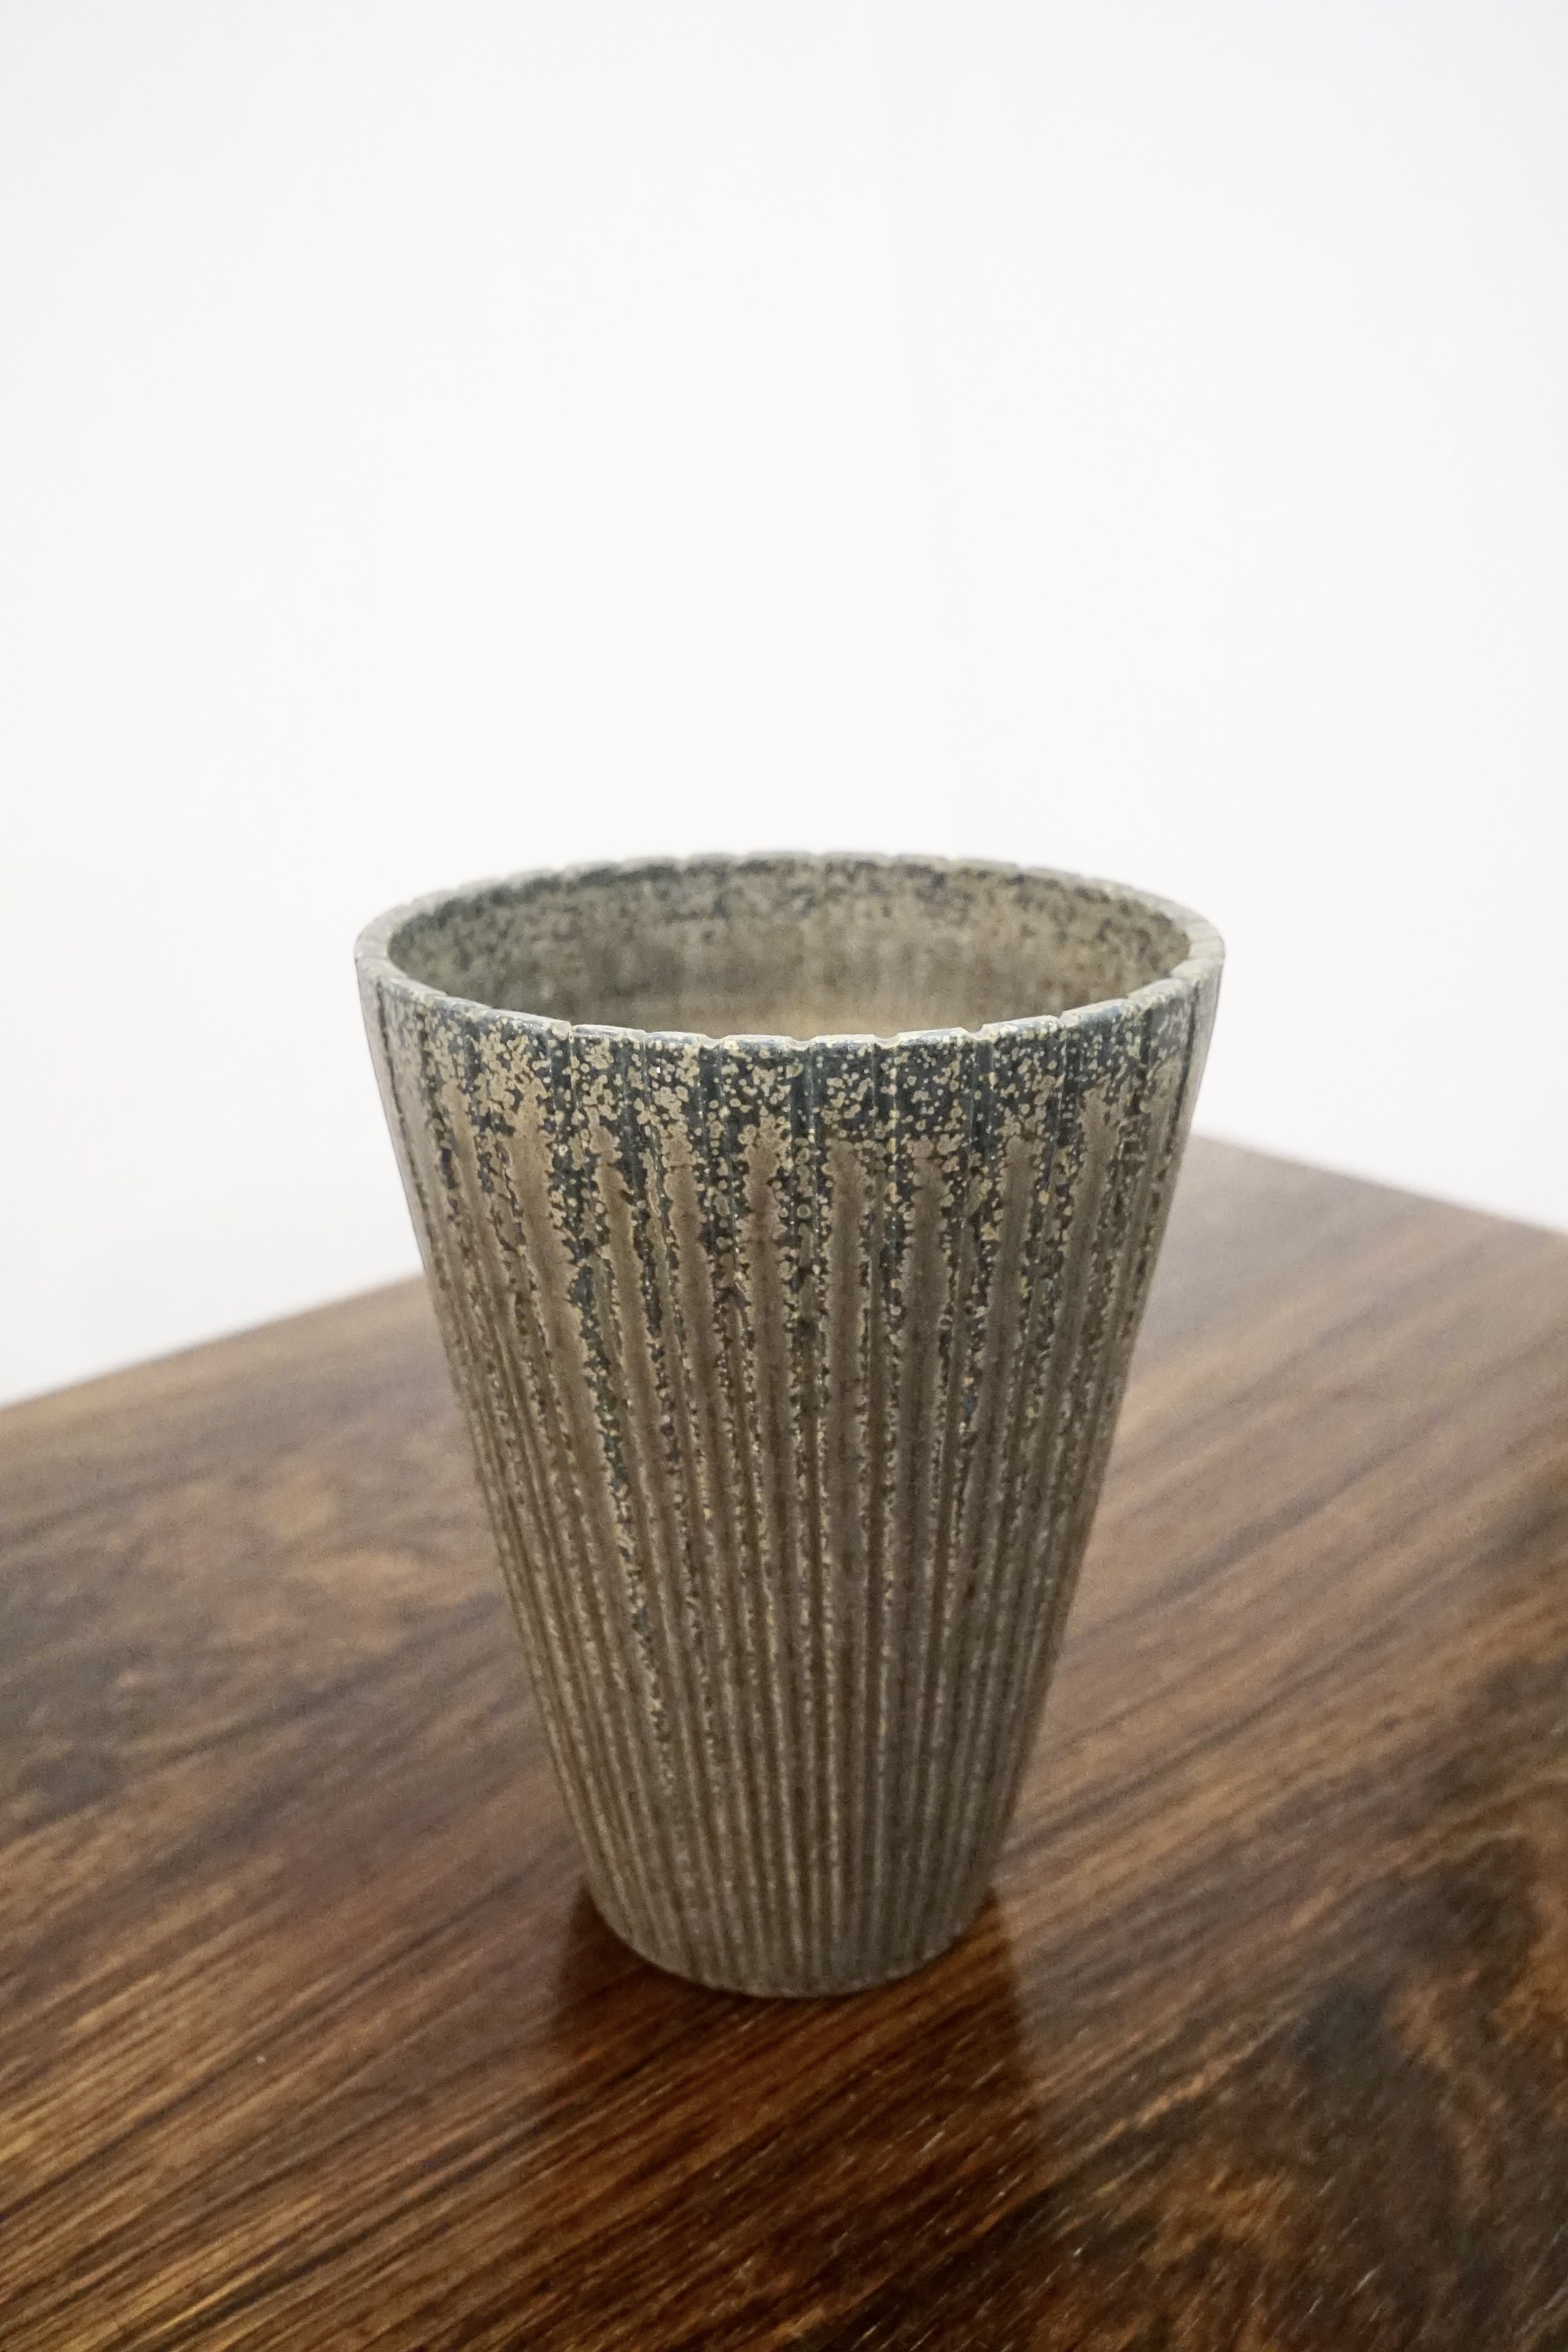 Arne Bang vase 18cm tall : Price upon request